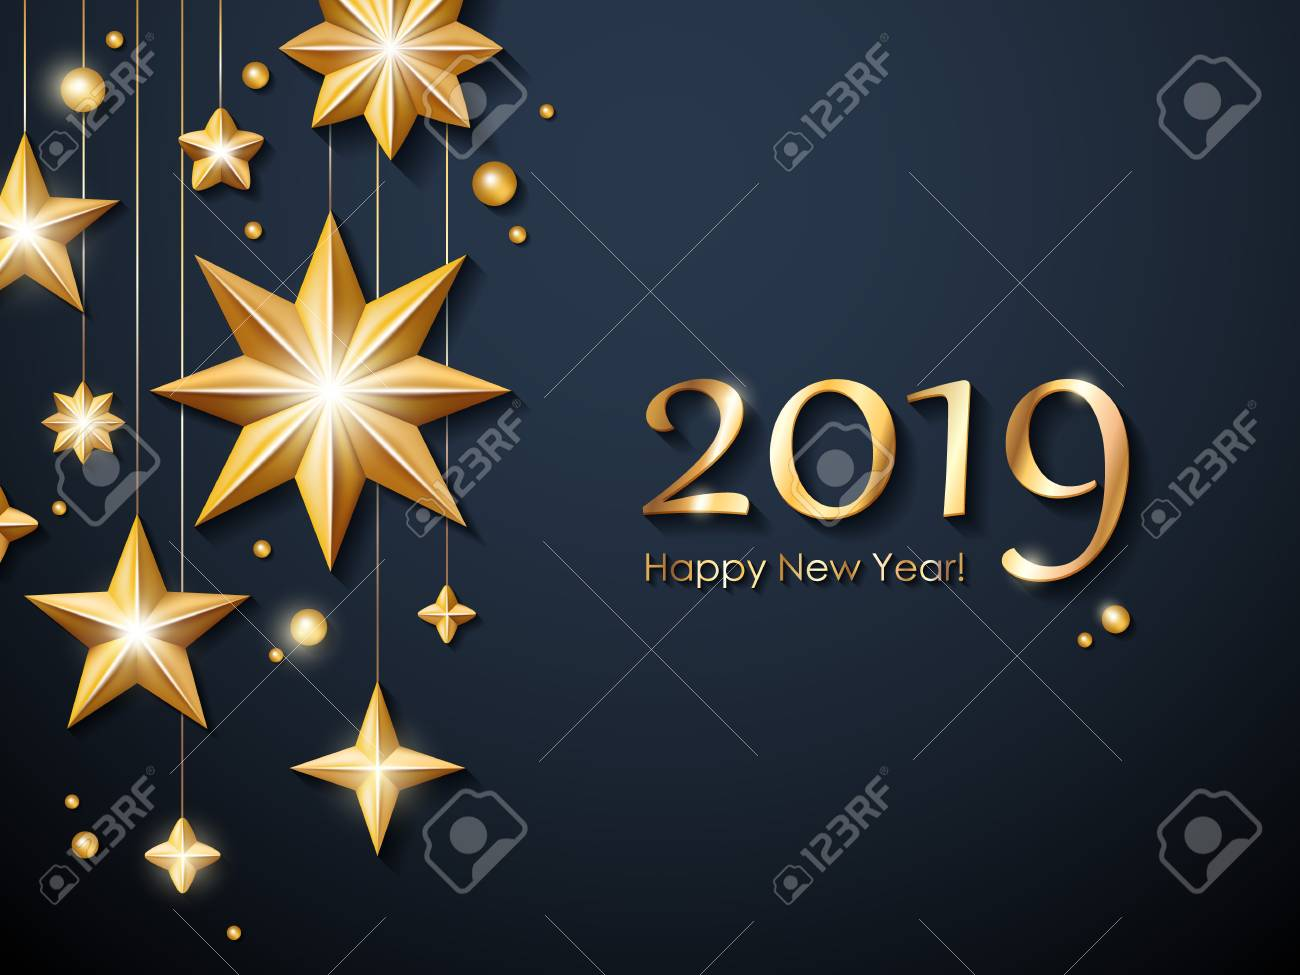 2019 happy new year background seasonal greeting card template stock vector 102751364